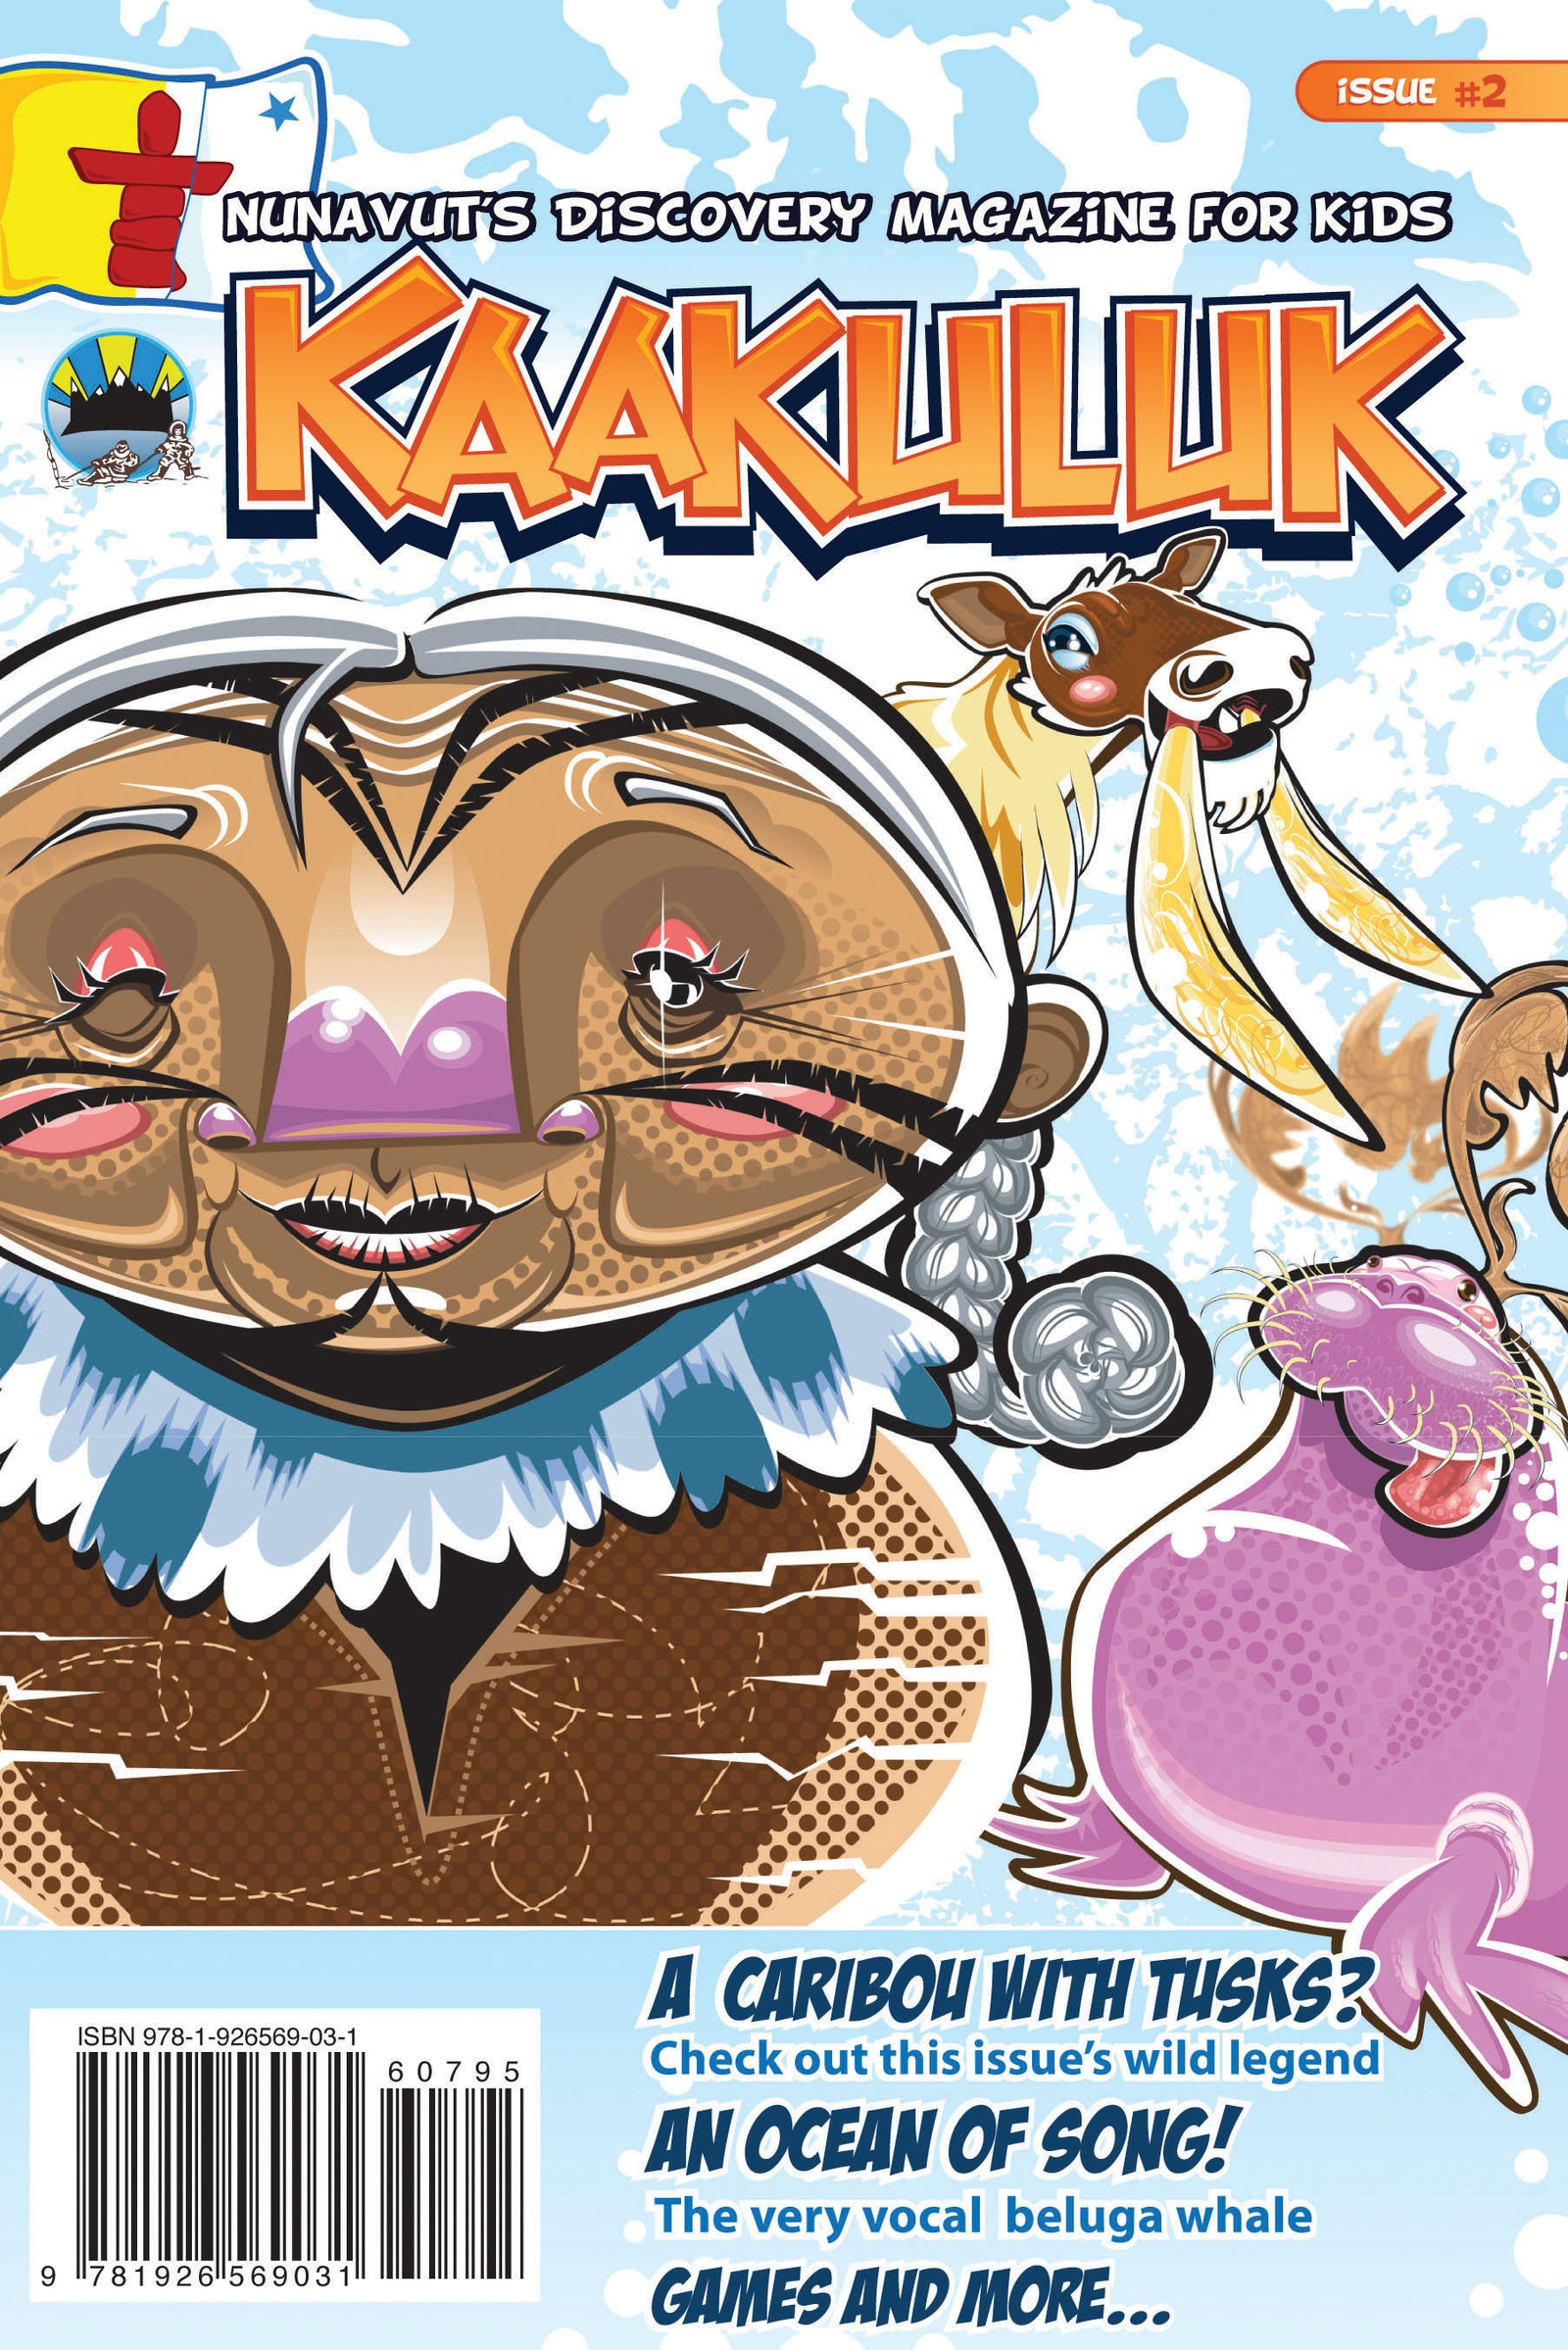 Kaakuluk: Nunavut's Discovery Magazine for Kids Issue #2